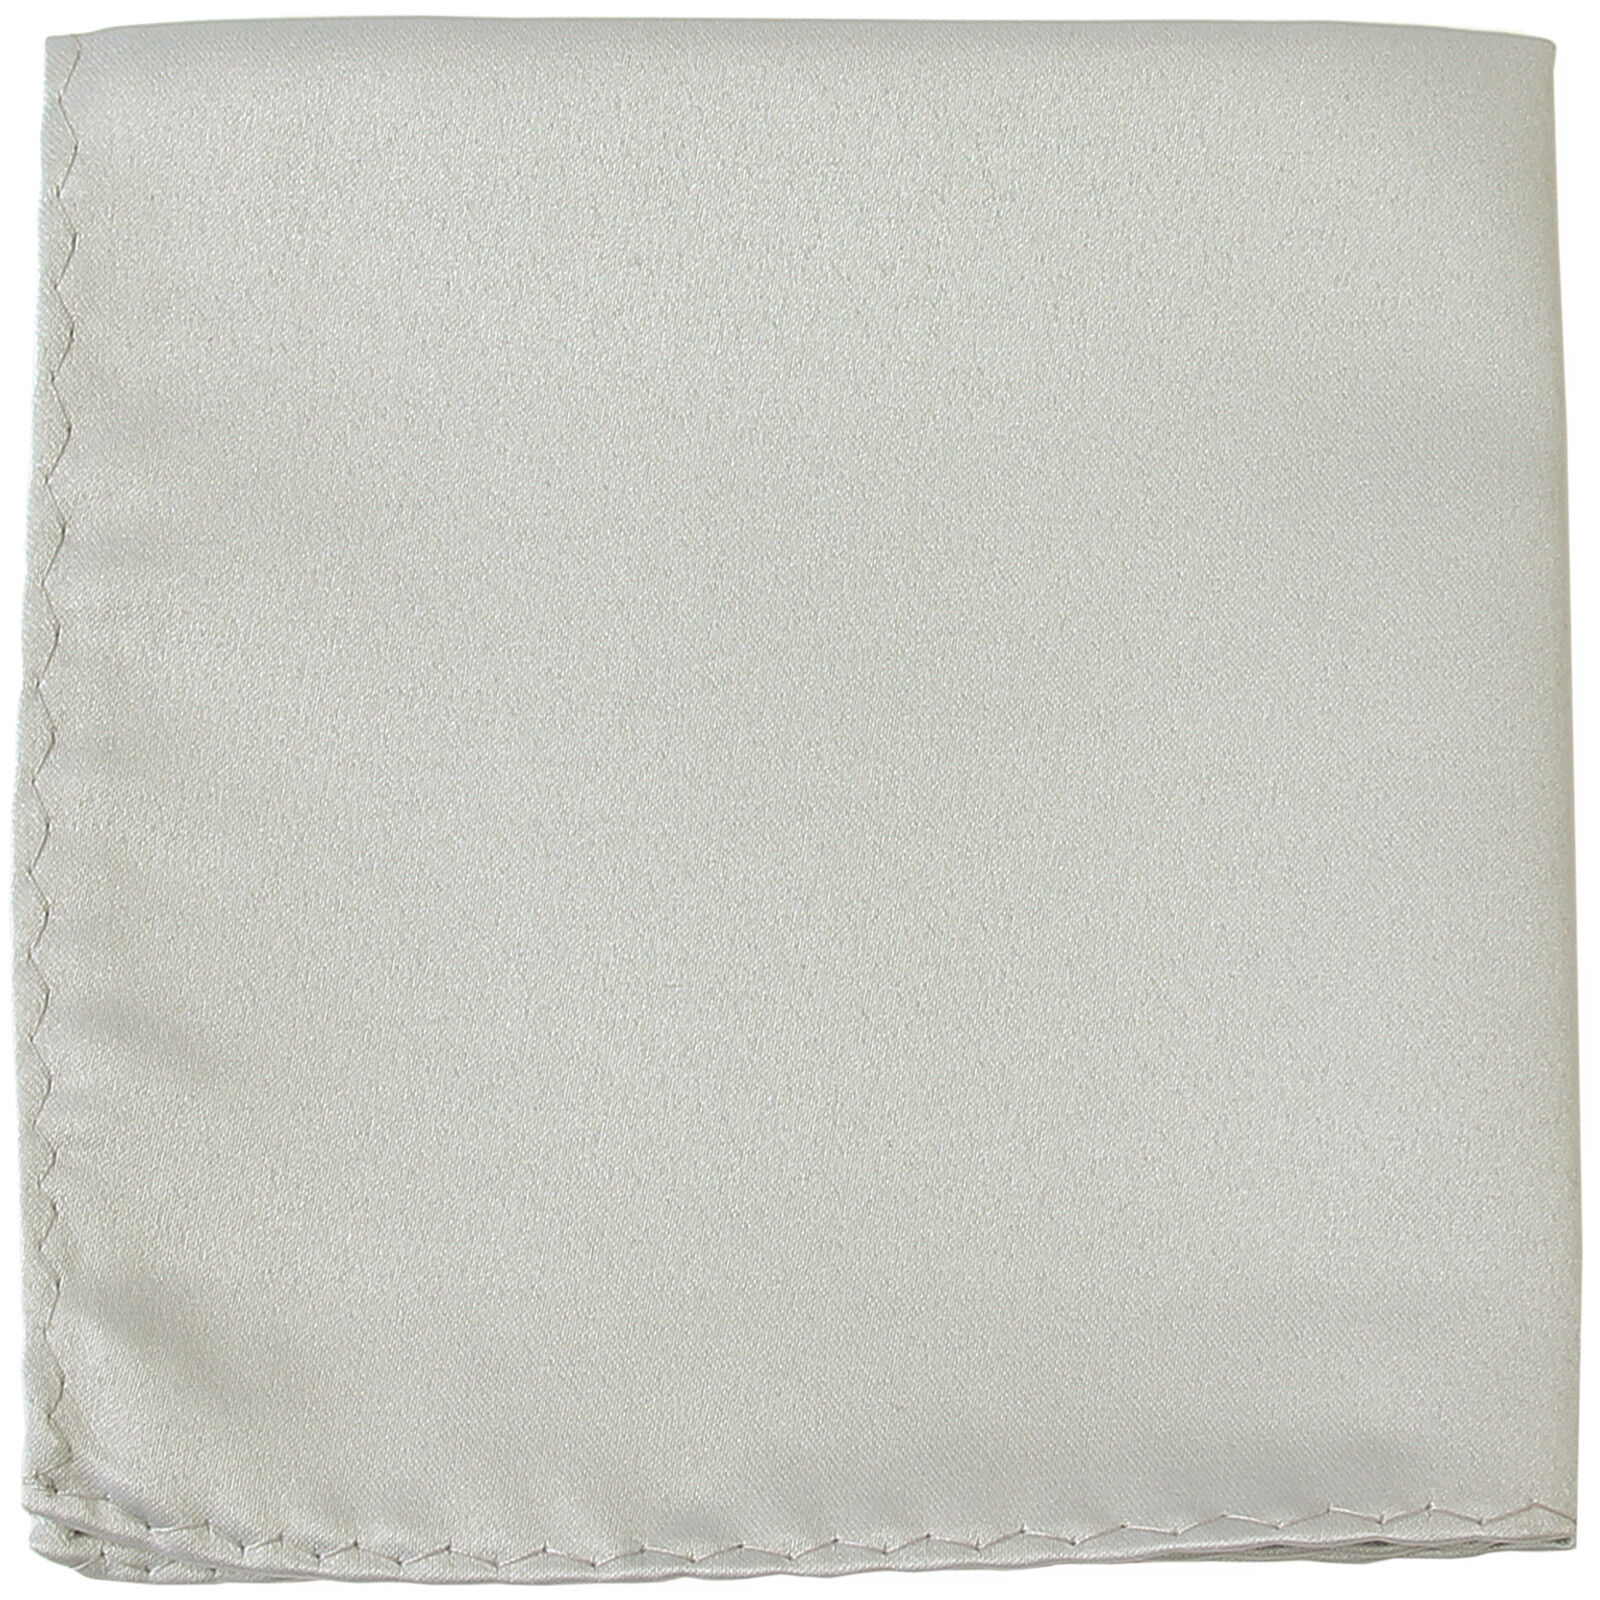 New Men's Polyester pocket square hankie only silver prom wedding